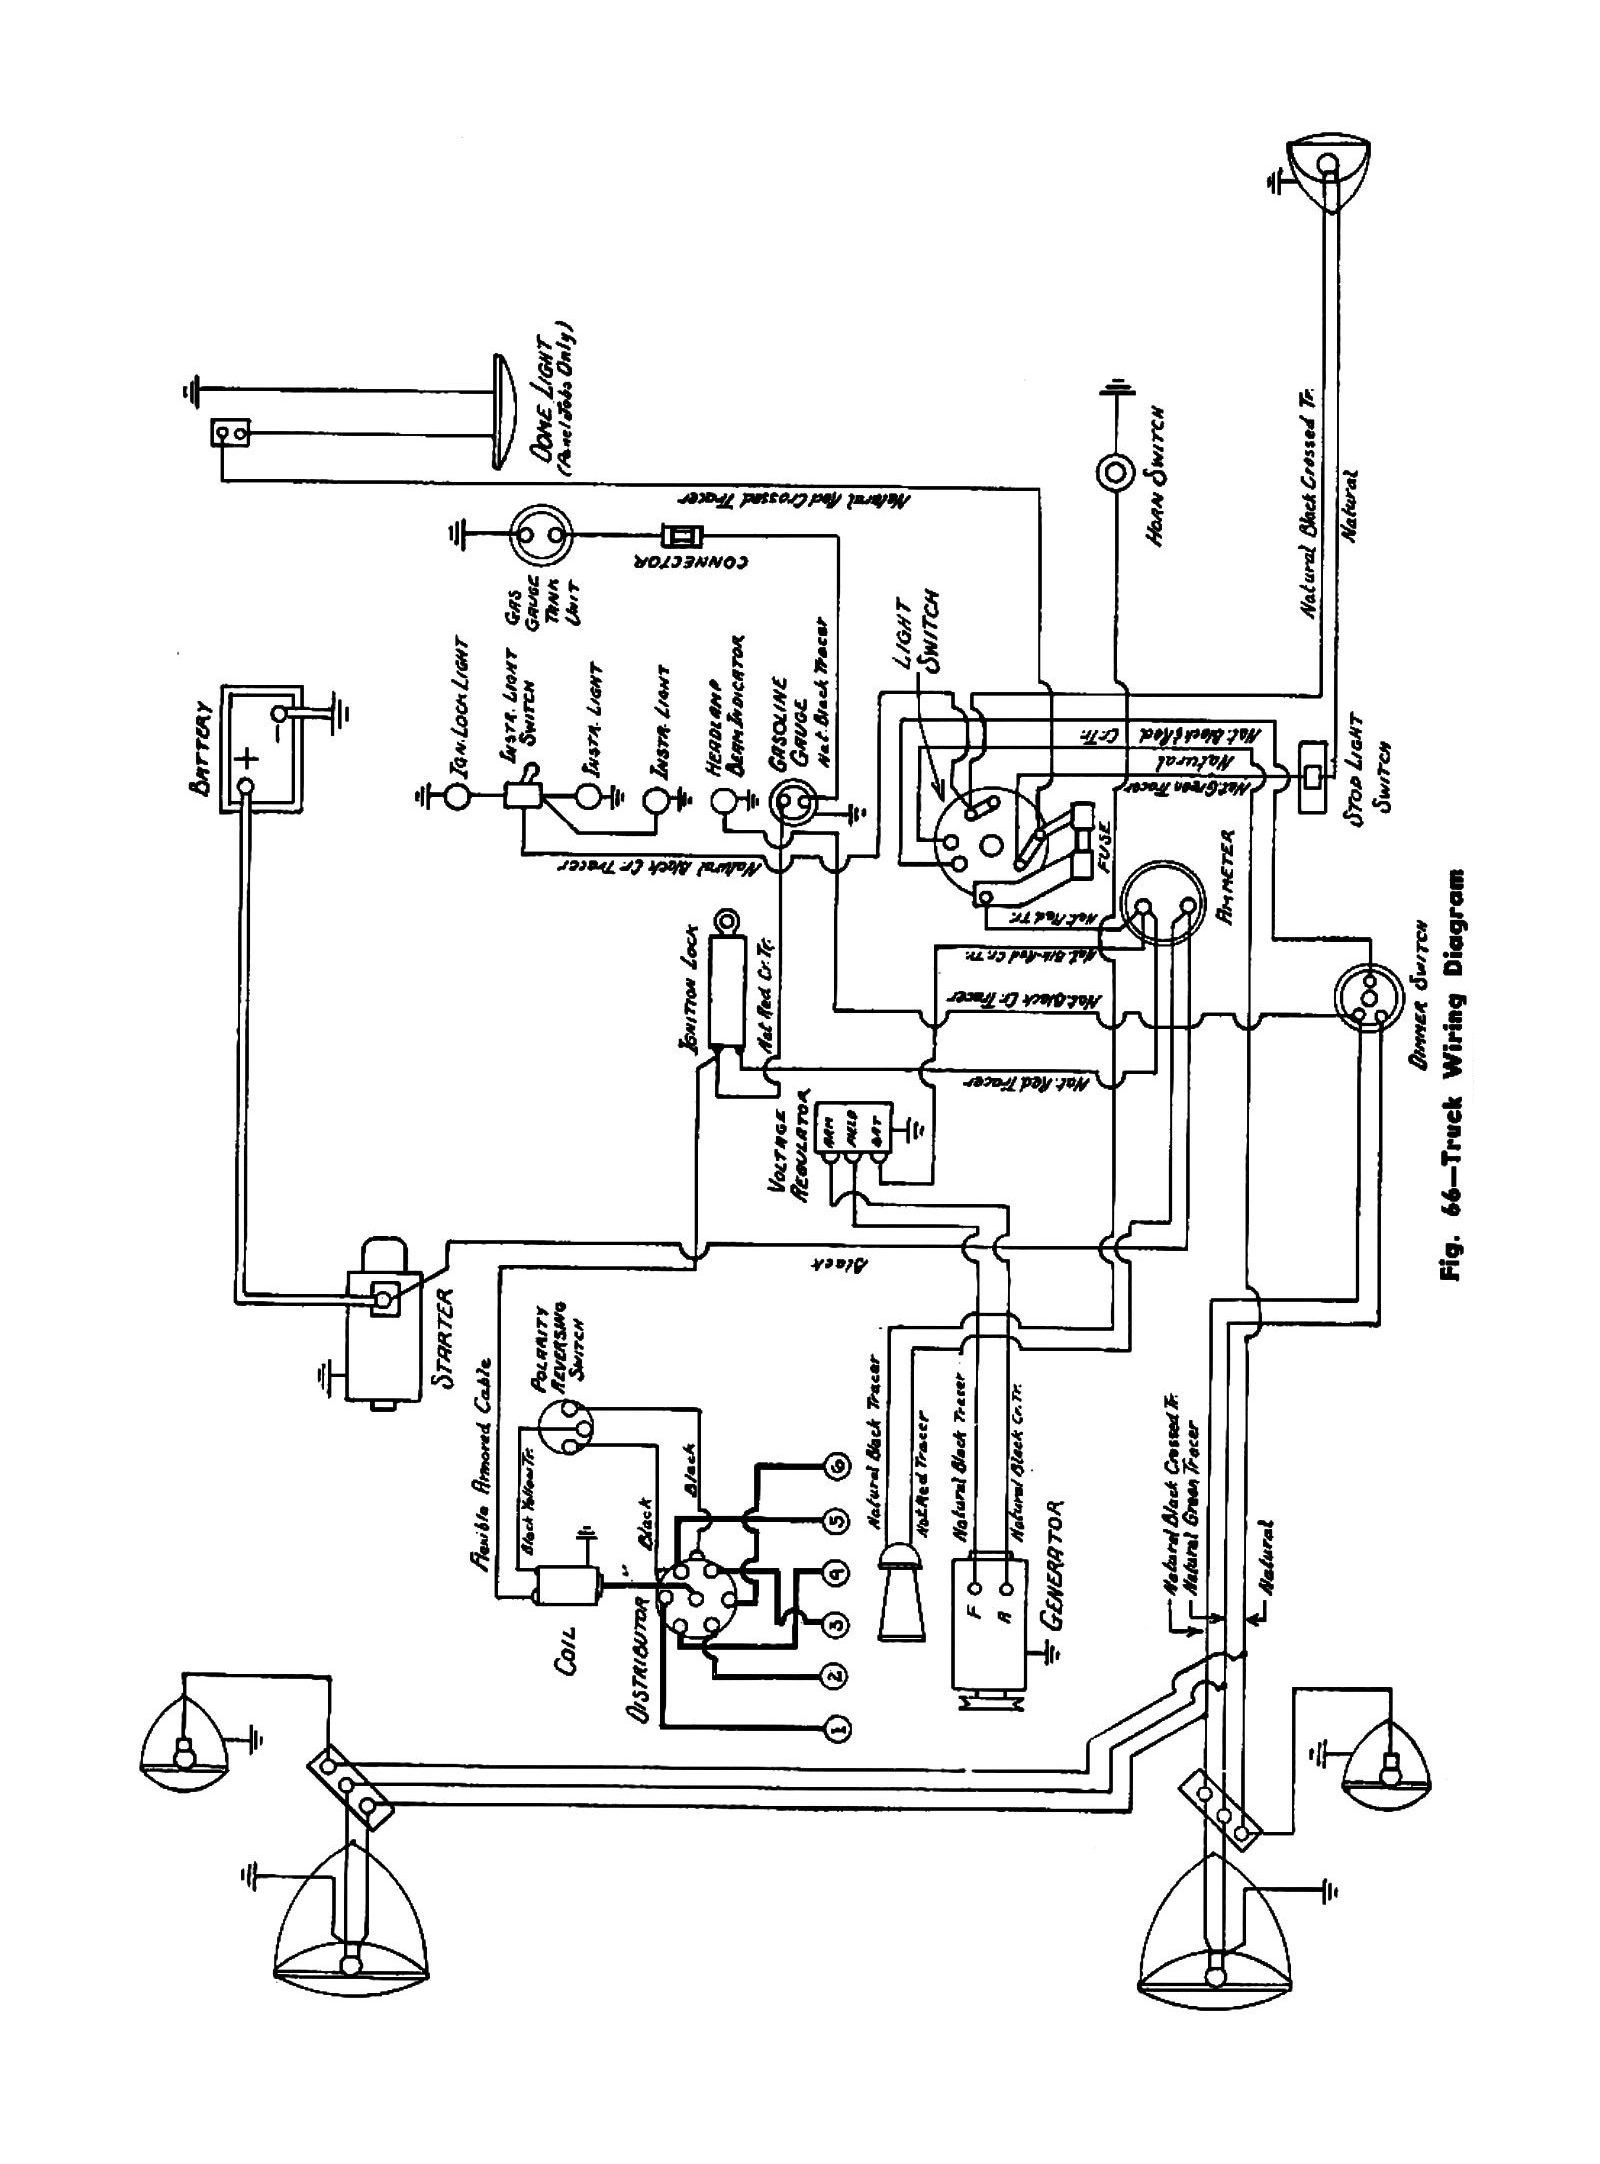 hight resolution of chevy wiring diagrams 2006 sterling truck wiring diagrams truck wiring diagrams